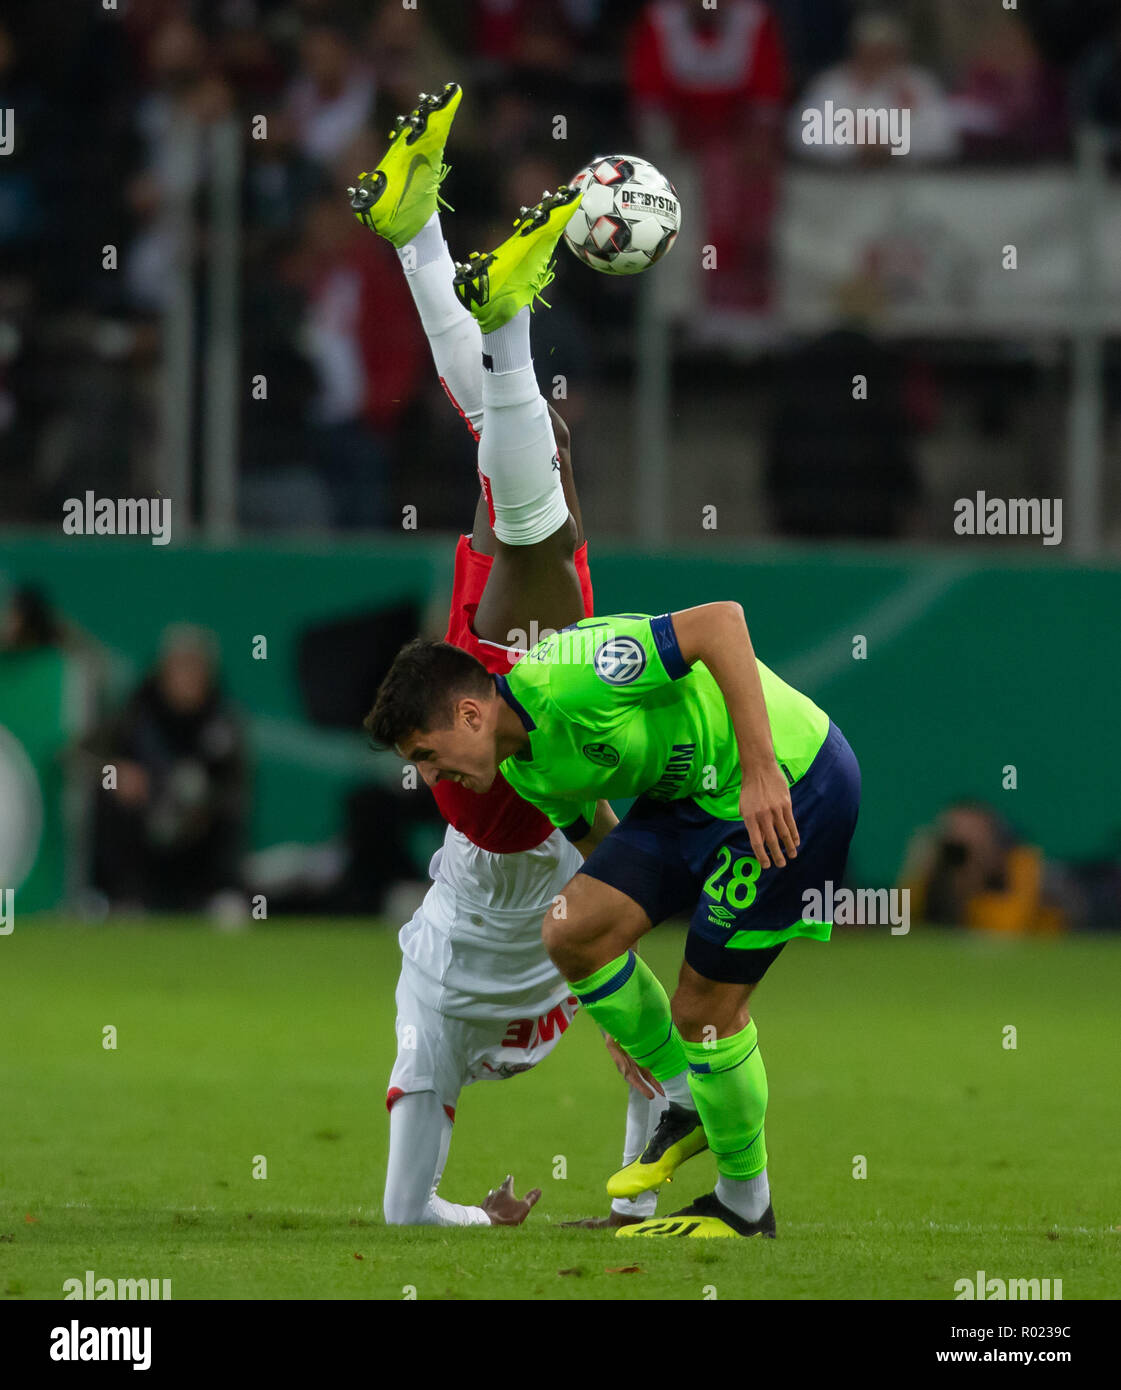 Cologne, Germany October 31 2018, DFB Pokal, FC Koeln - FC Schalke 04: Sehrou Guirassy (Koeln), Alessandro Andre Schoepf (S04) in competition.                 Credit: Juergen Schwarz/Alamy Live News    DFB REGULATIONS PROHIBIT ANY USE OF PHOTOGRAPHS AS IMAGE SEQUENCES AND/OR QUASI-VIDEO Credit: Juergen Schwarz/Alamy Live News - Stock Image